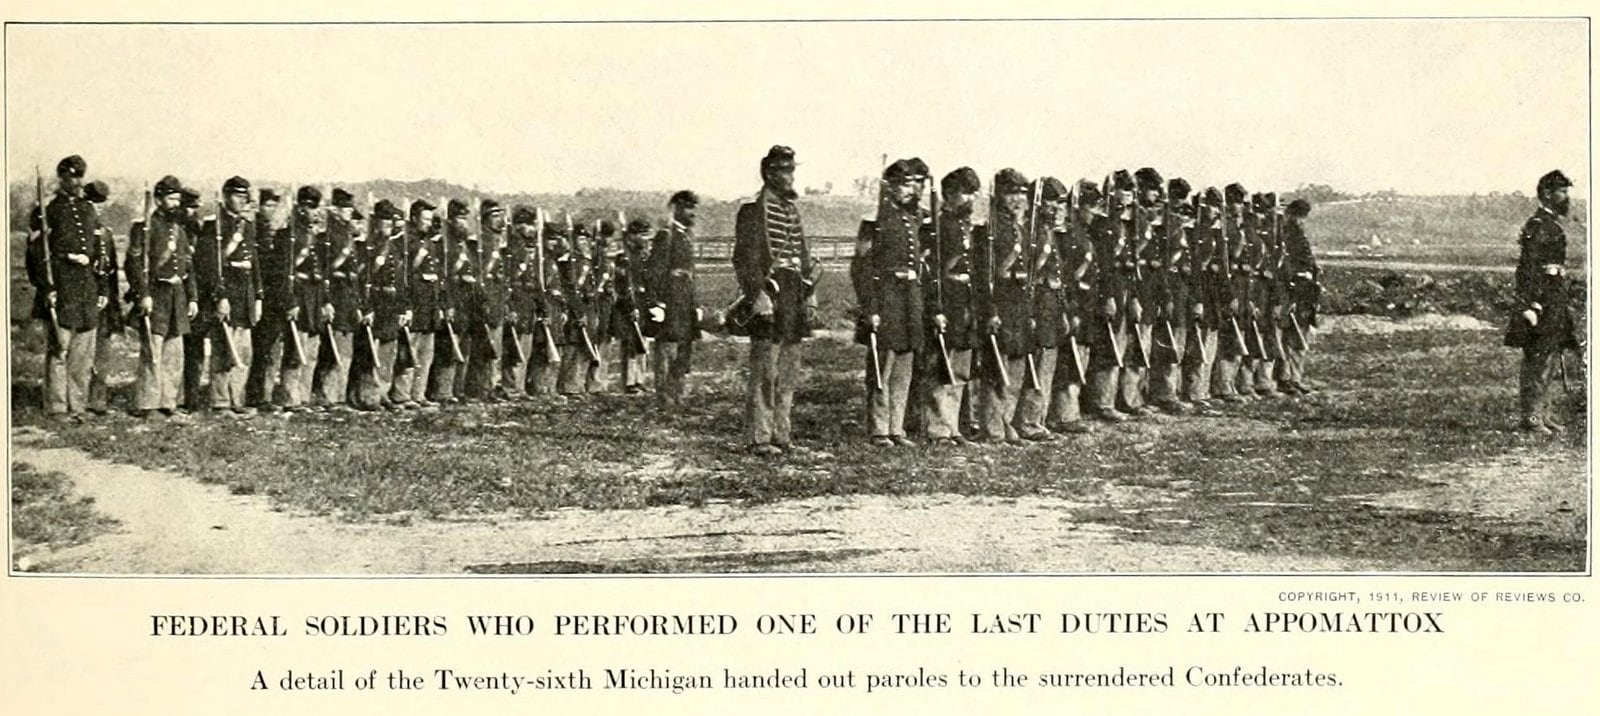 Federal soldiers who performed one of the last duties at Appomattox